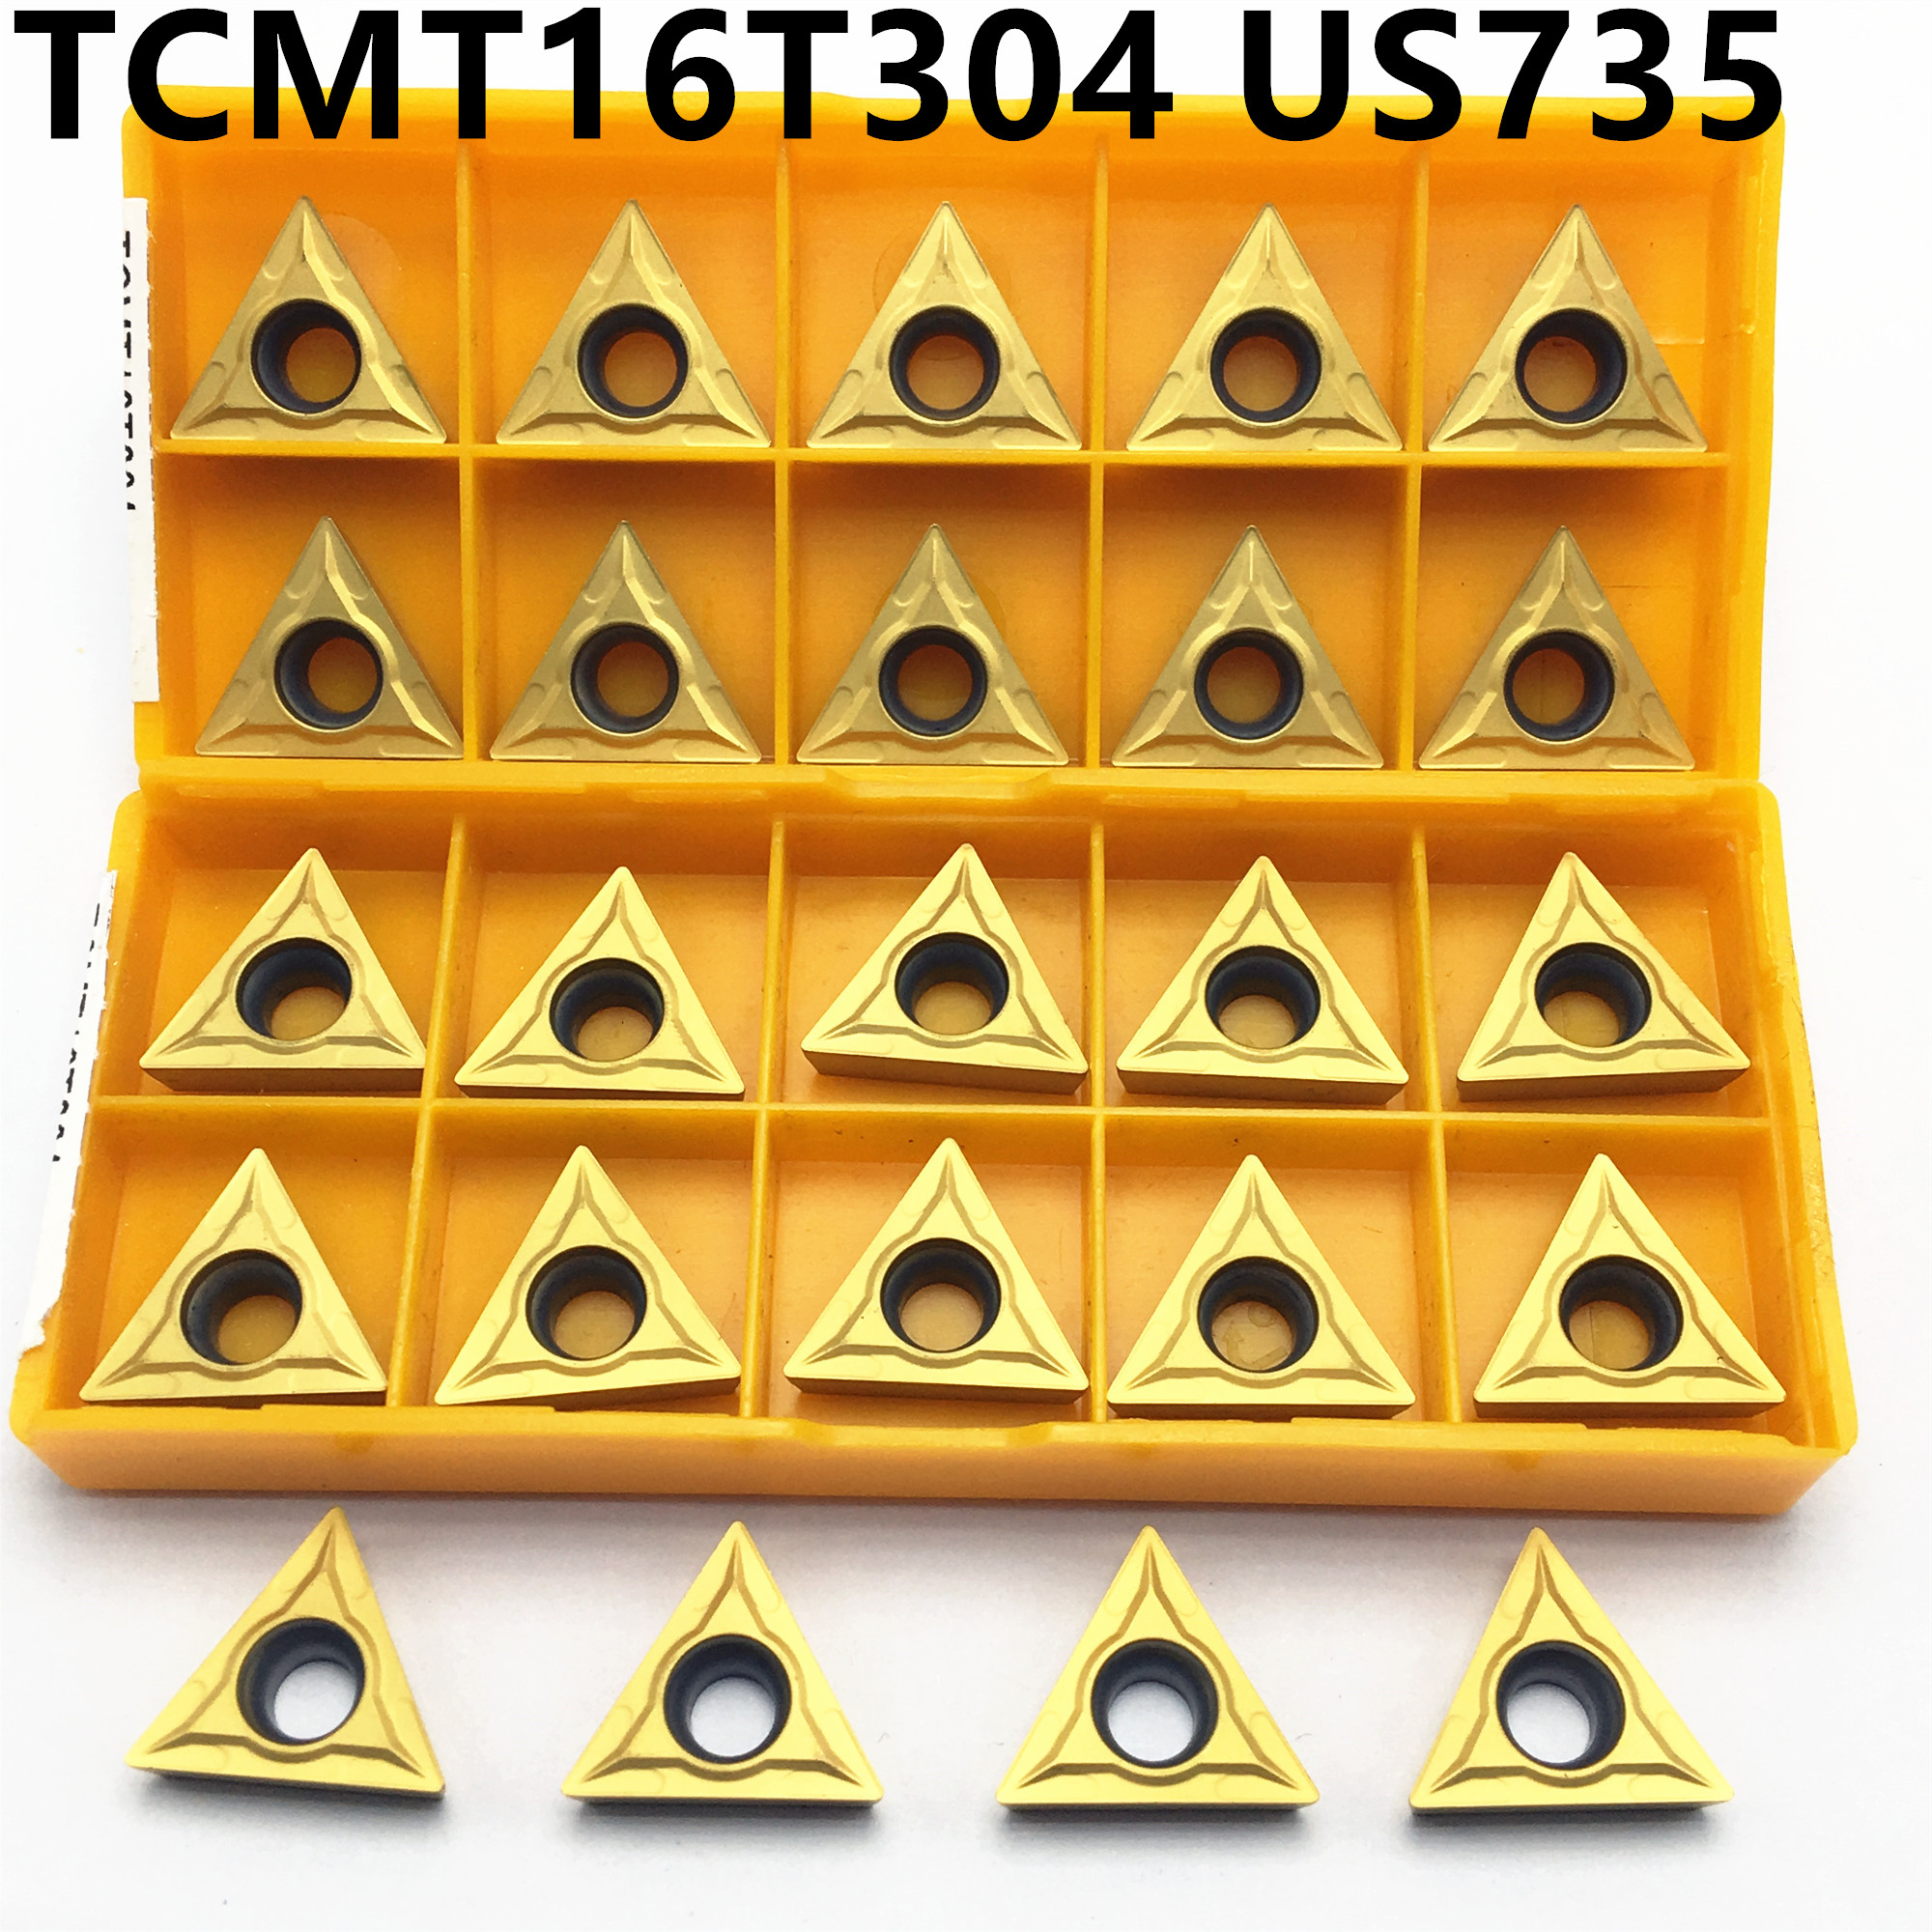 10 Pieces TCMT16T304 US735 Carbide Insert Internal Turning Turning Blade TCMT 16T304 Lathe Tool CNC Cutting Tool